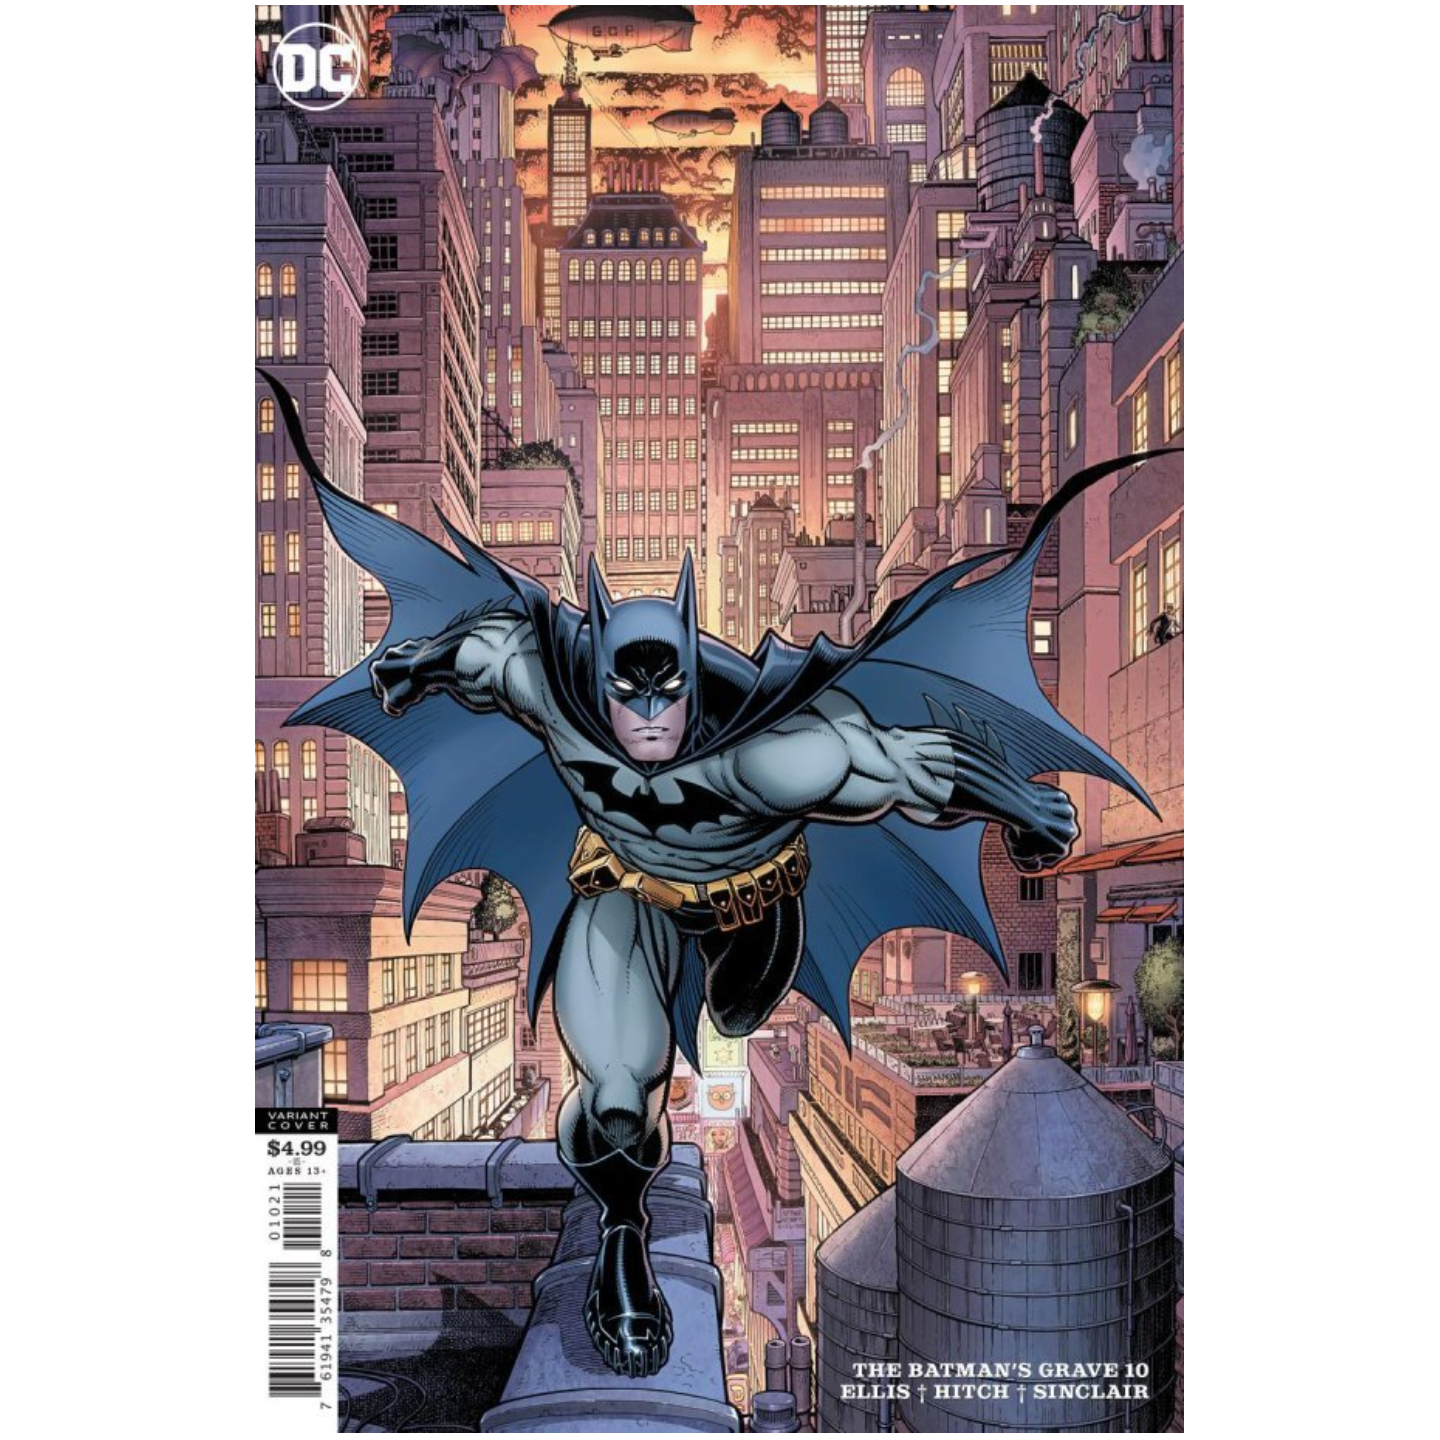 BATMANS GRAVE #10 (OF 12) CVR B ARTHUR ADAMS CARD STOCK VAR